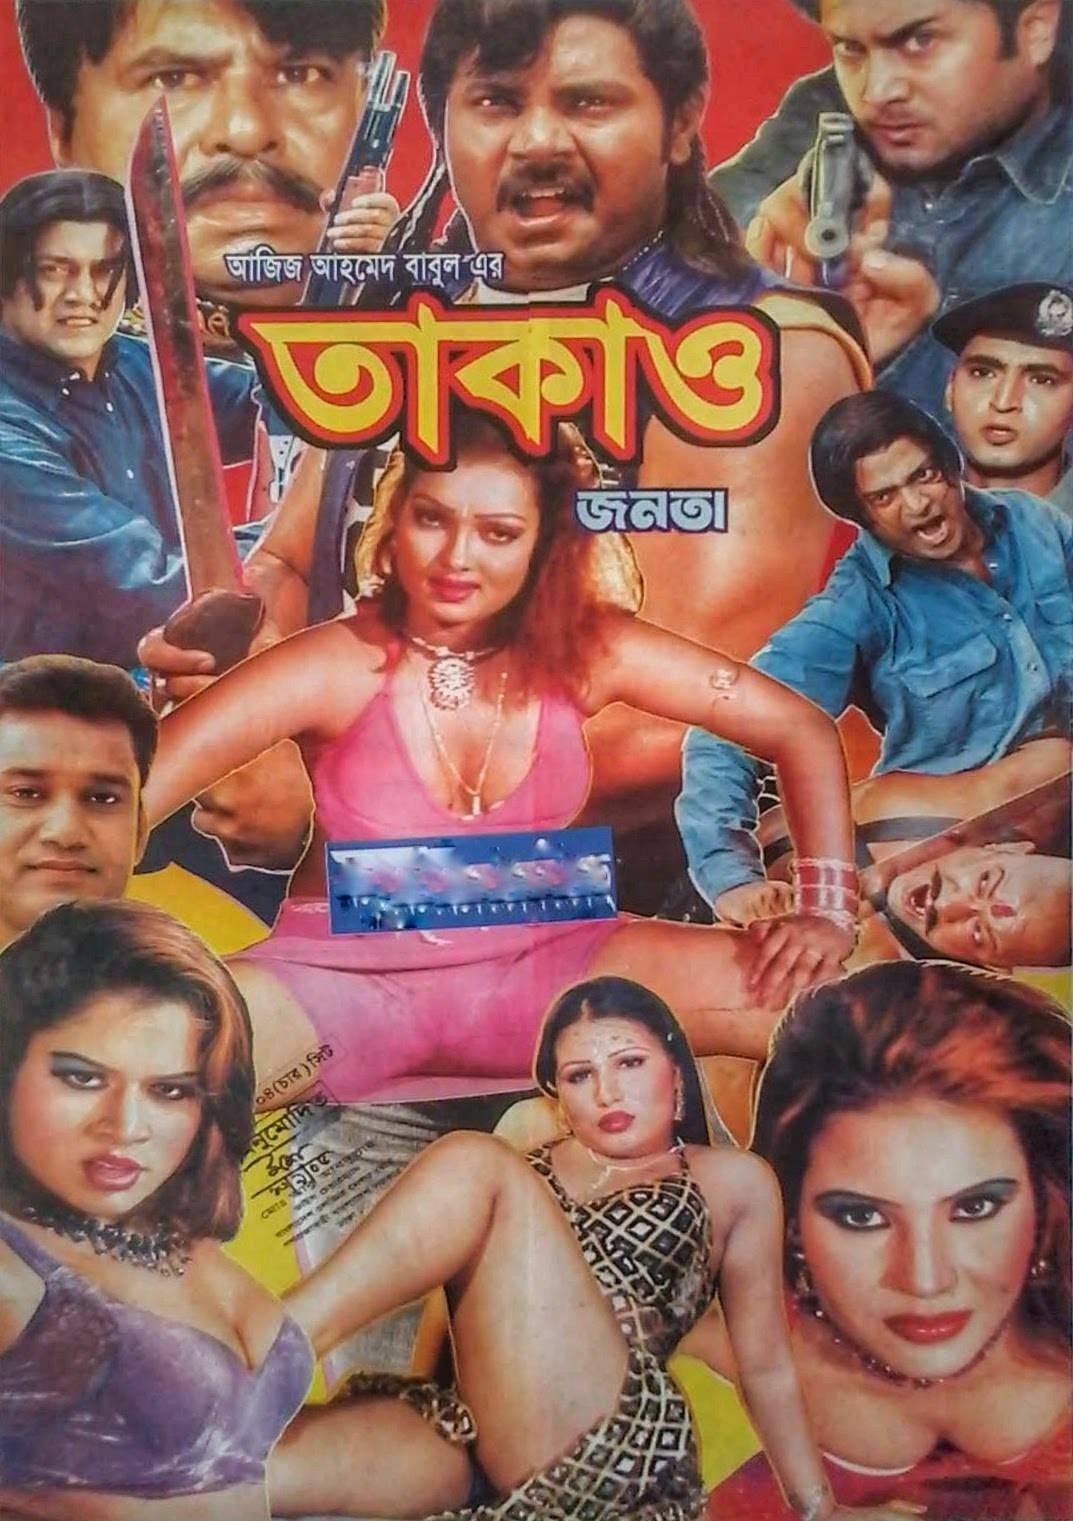 Takau Jonota 2021 Bangla Full Hot Movie 720p HDRip 700MB MKV